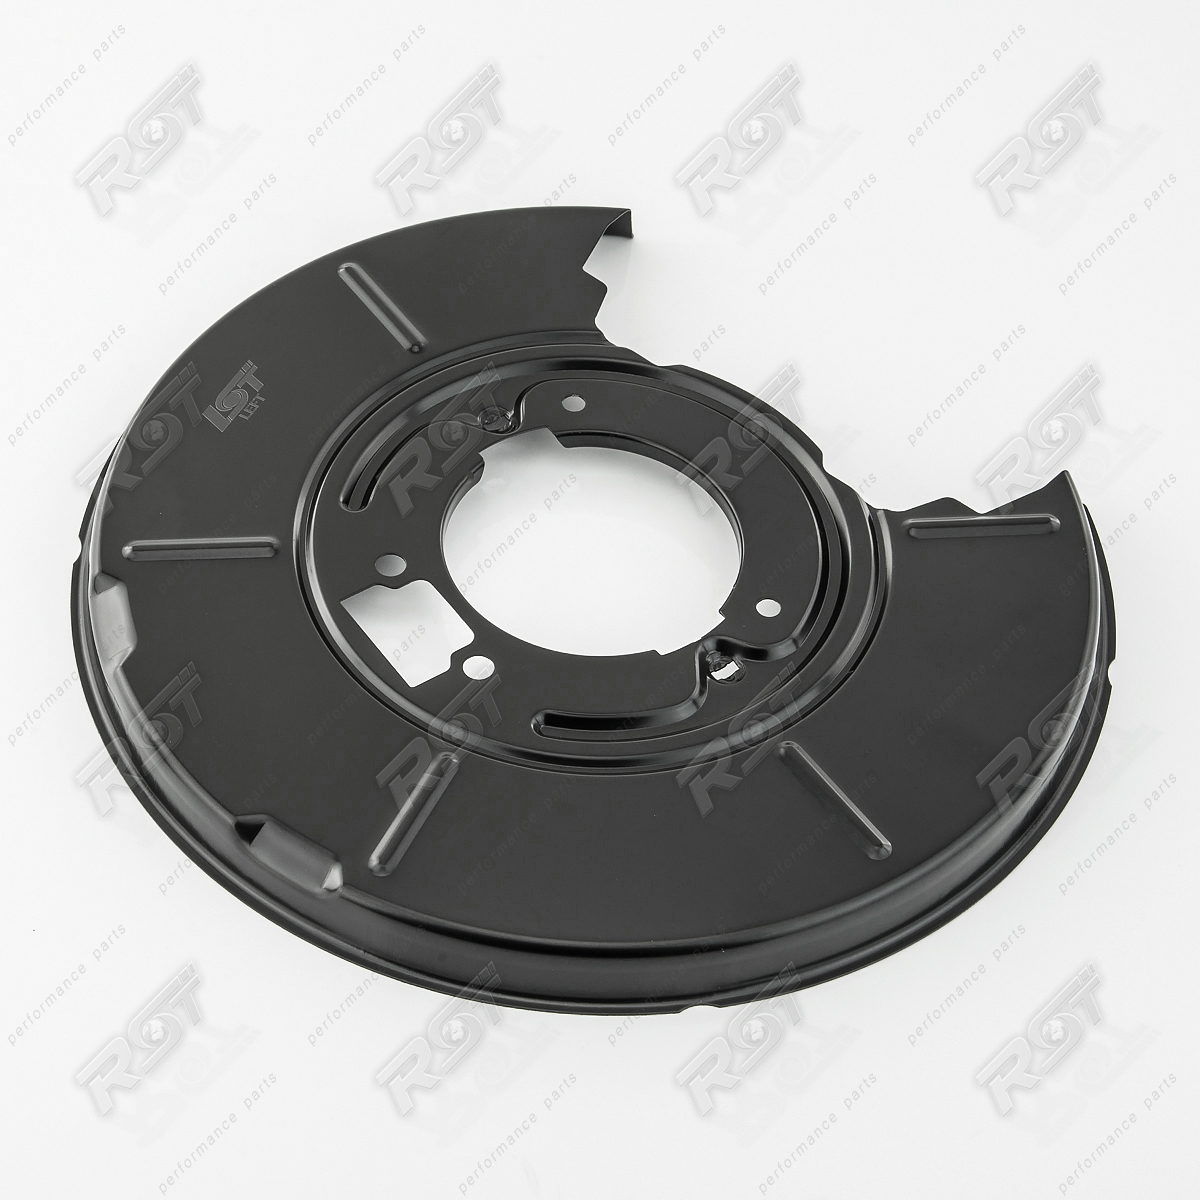 Bmw Z1 Door: Splashguard Cover Plate Armature Plate Brake Disc Brake